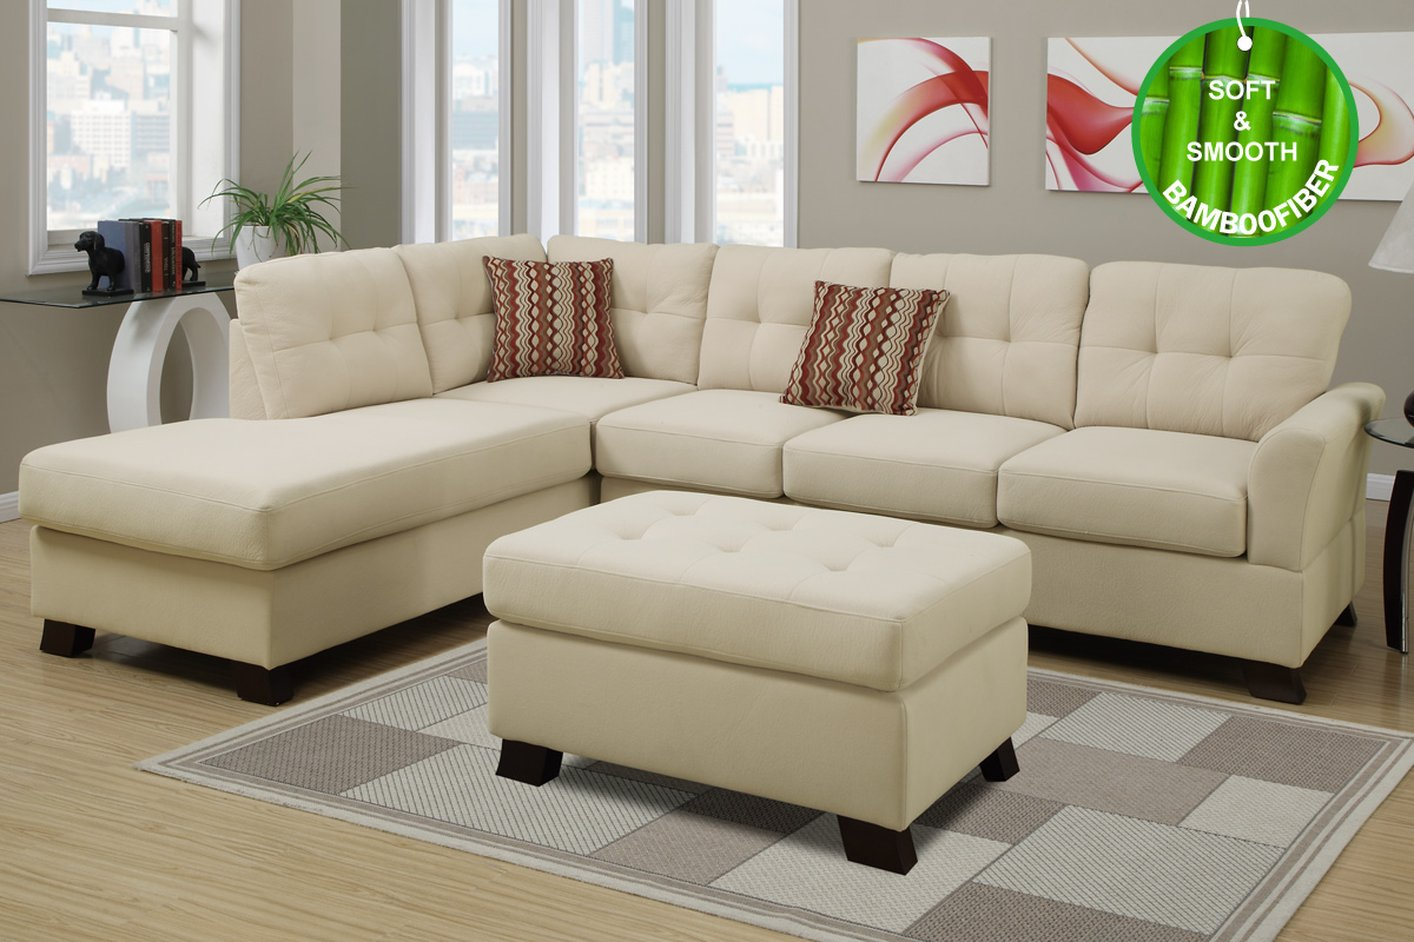 beige fabric sectional sofa and ottoman steal a sofa furniture outlet los angeles ca. Black Bedroom Furniture Sets. Home Design Ideas